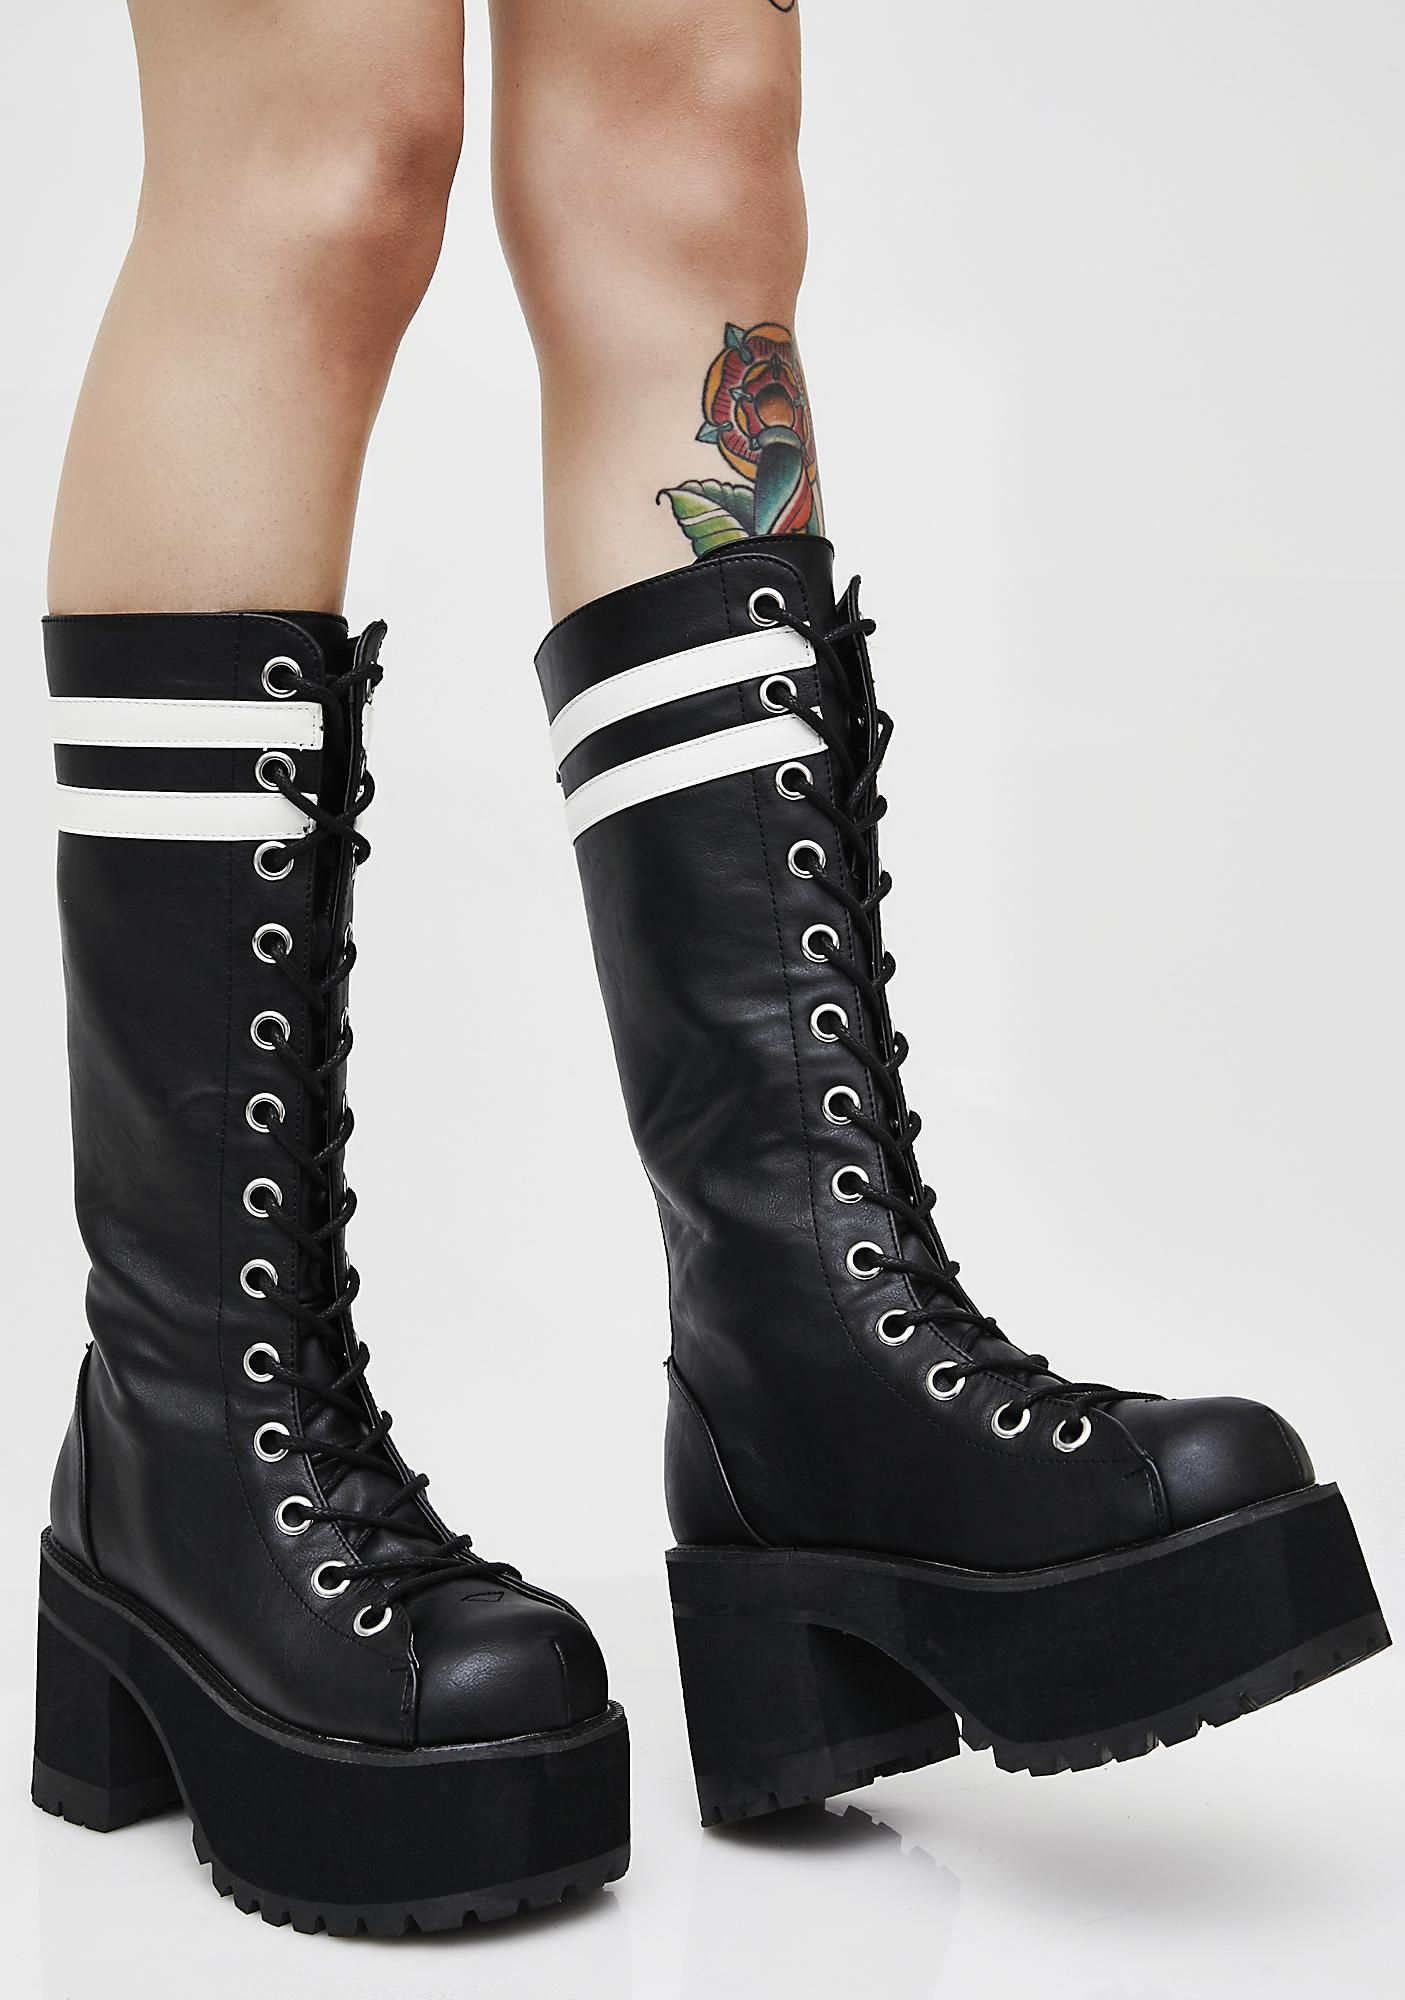 8baef3c29 These black boots have thick soles, lace-up fronts, back zipper closures,  and white stripes at the top.